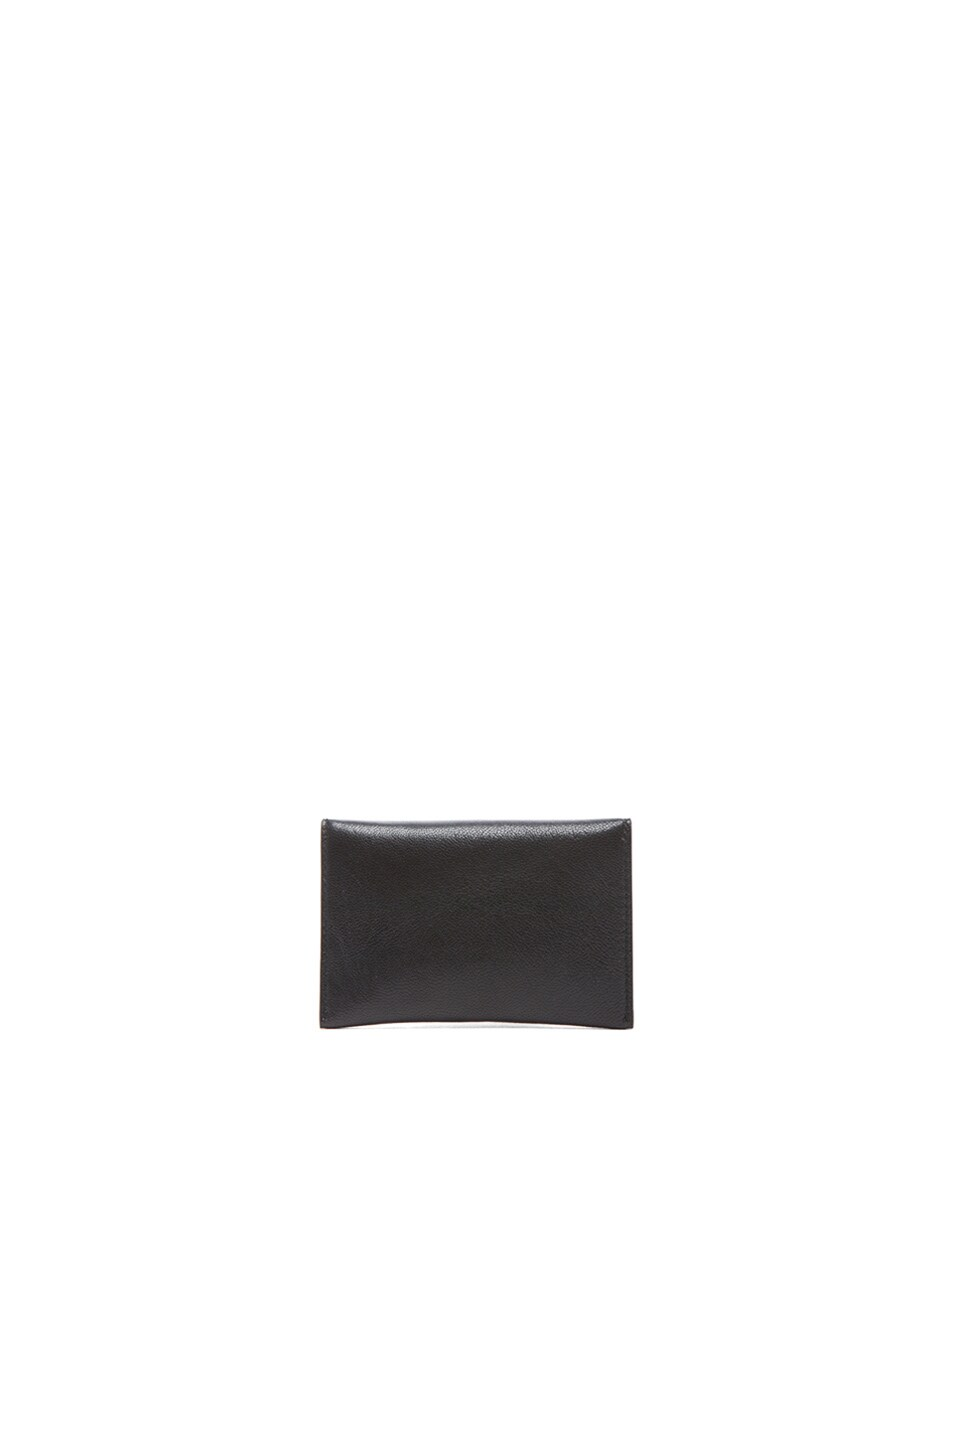 Image 2 of Alexander McQueen Envelope Card Holder in Black